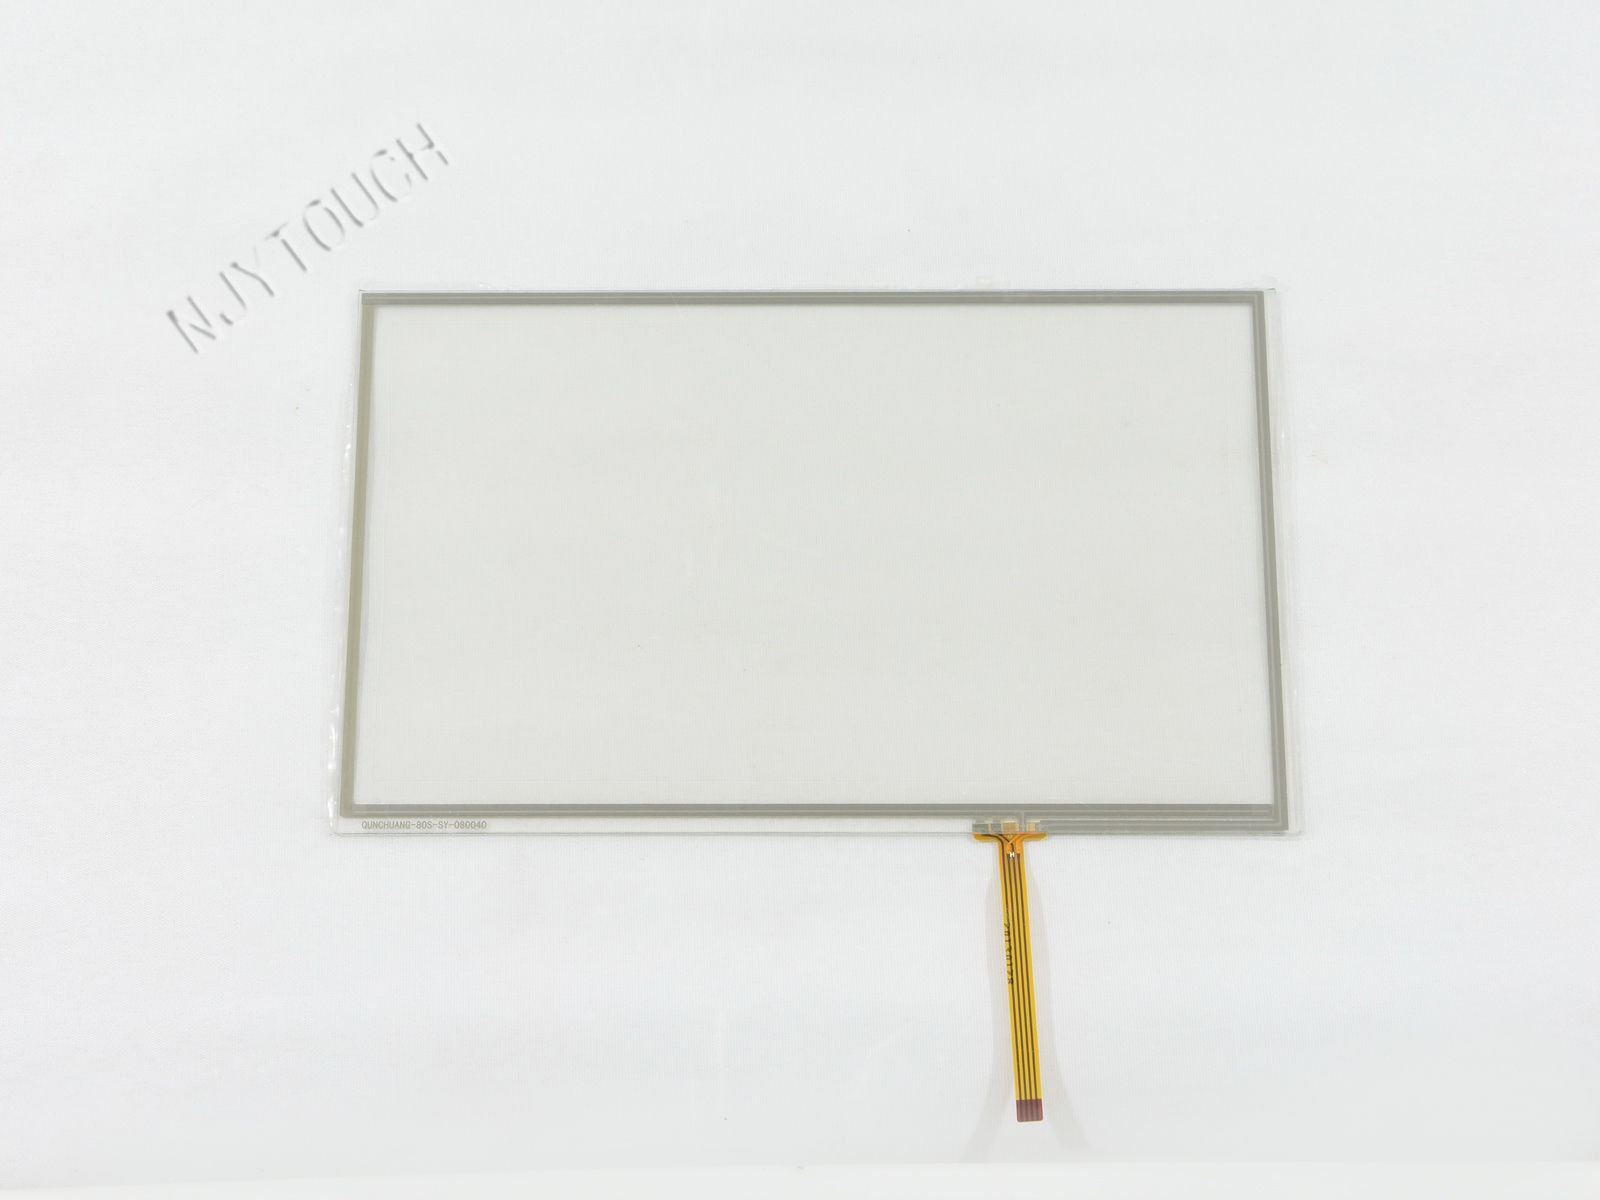 8 inch 4 Wire Resistive Touch Screen Panel